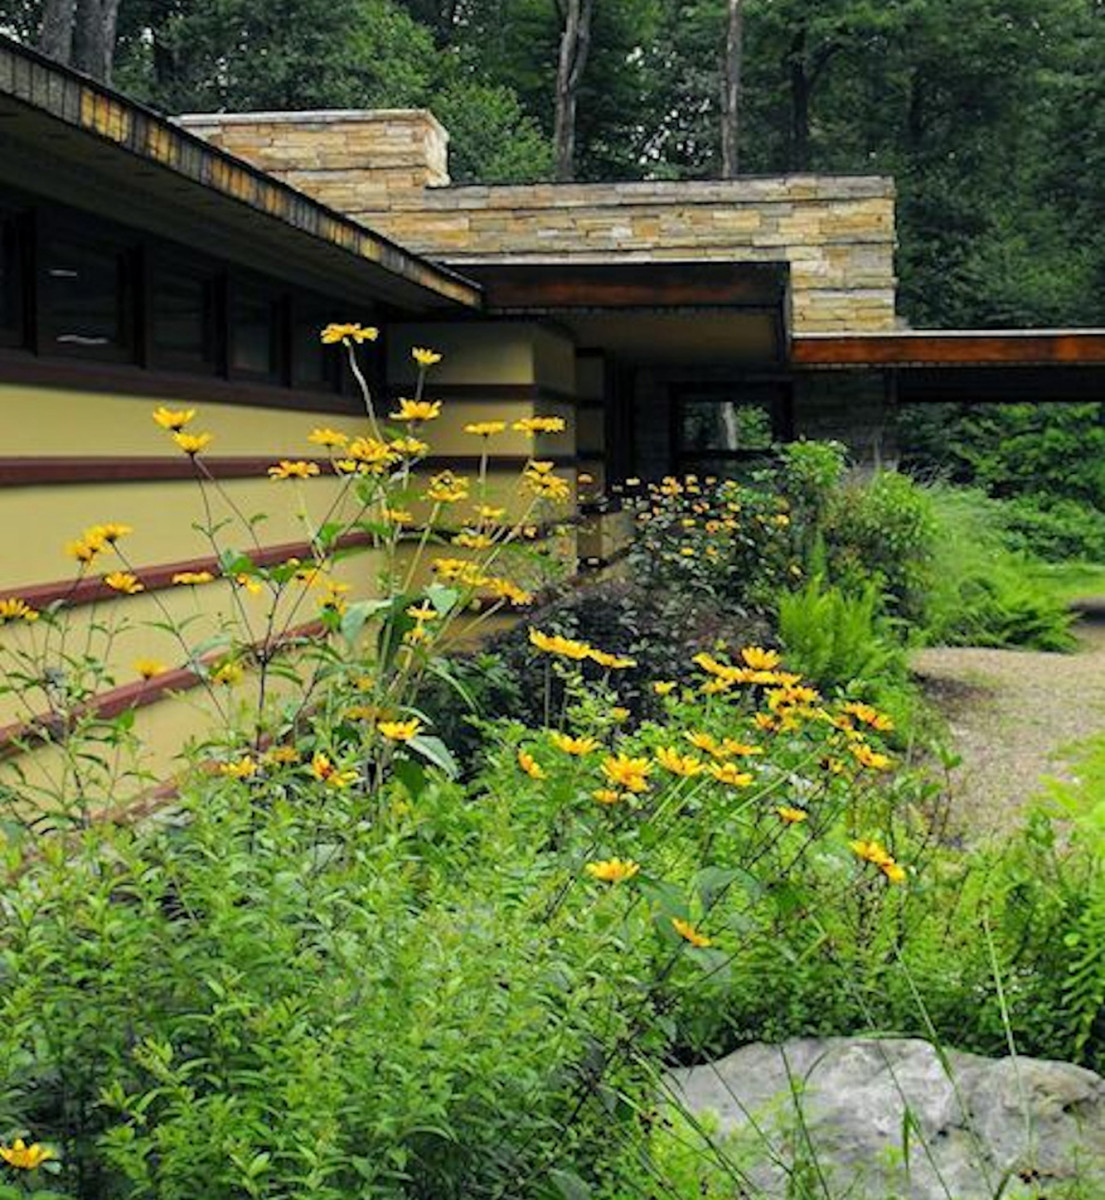 Duncan House, Frank Lloyd Wright house